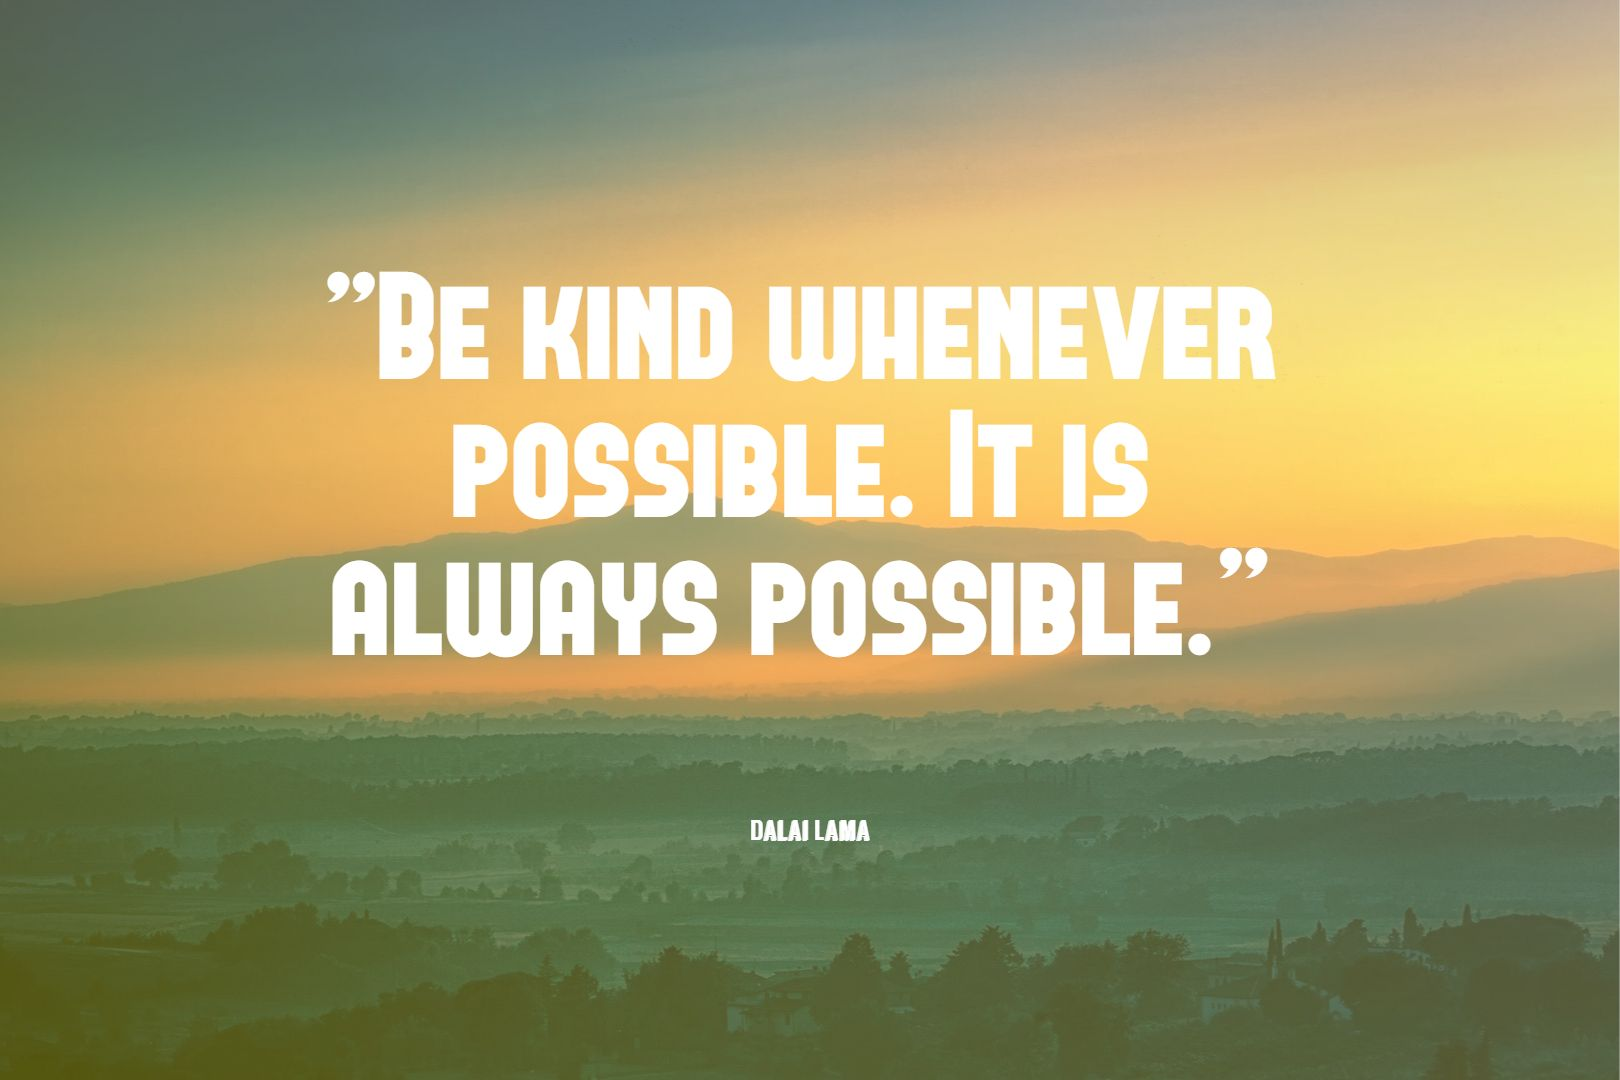 Kết quả hình ảnh cho Be kind whenever possible. It is always possible.